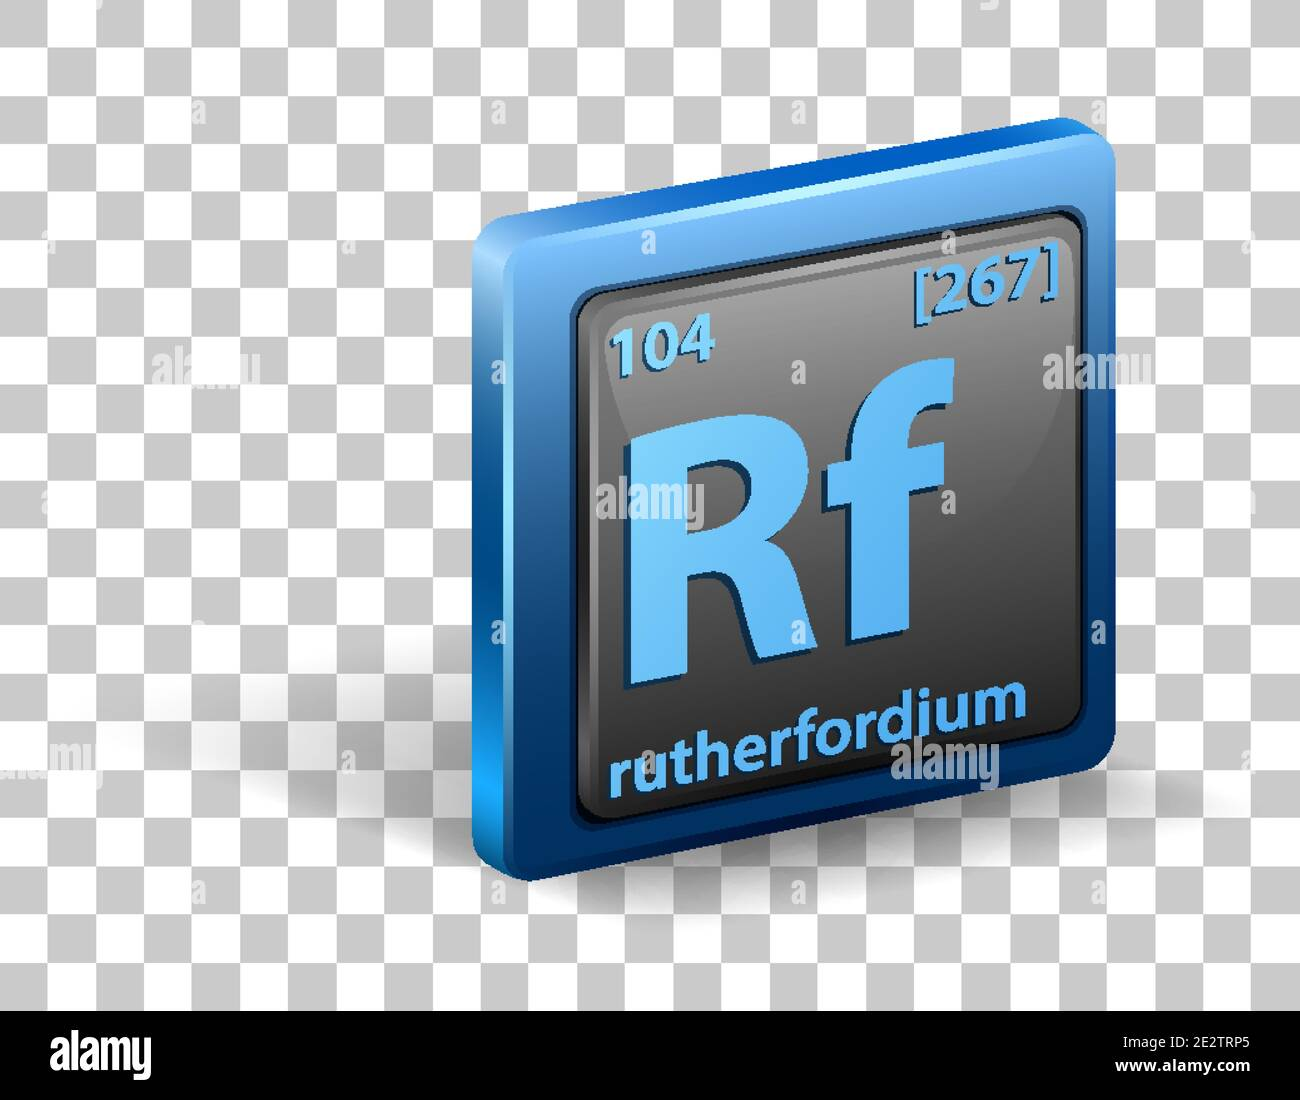 Rutherfordium chemical element. Chemical symbol with atomic number and atomic mass. illustration Stock Vector